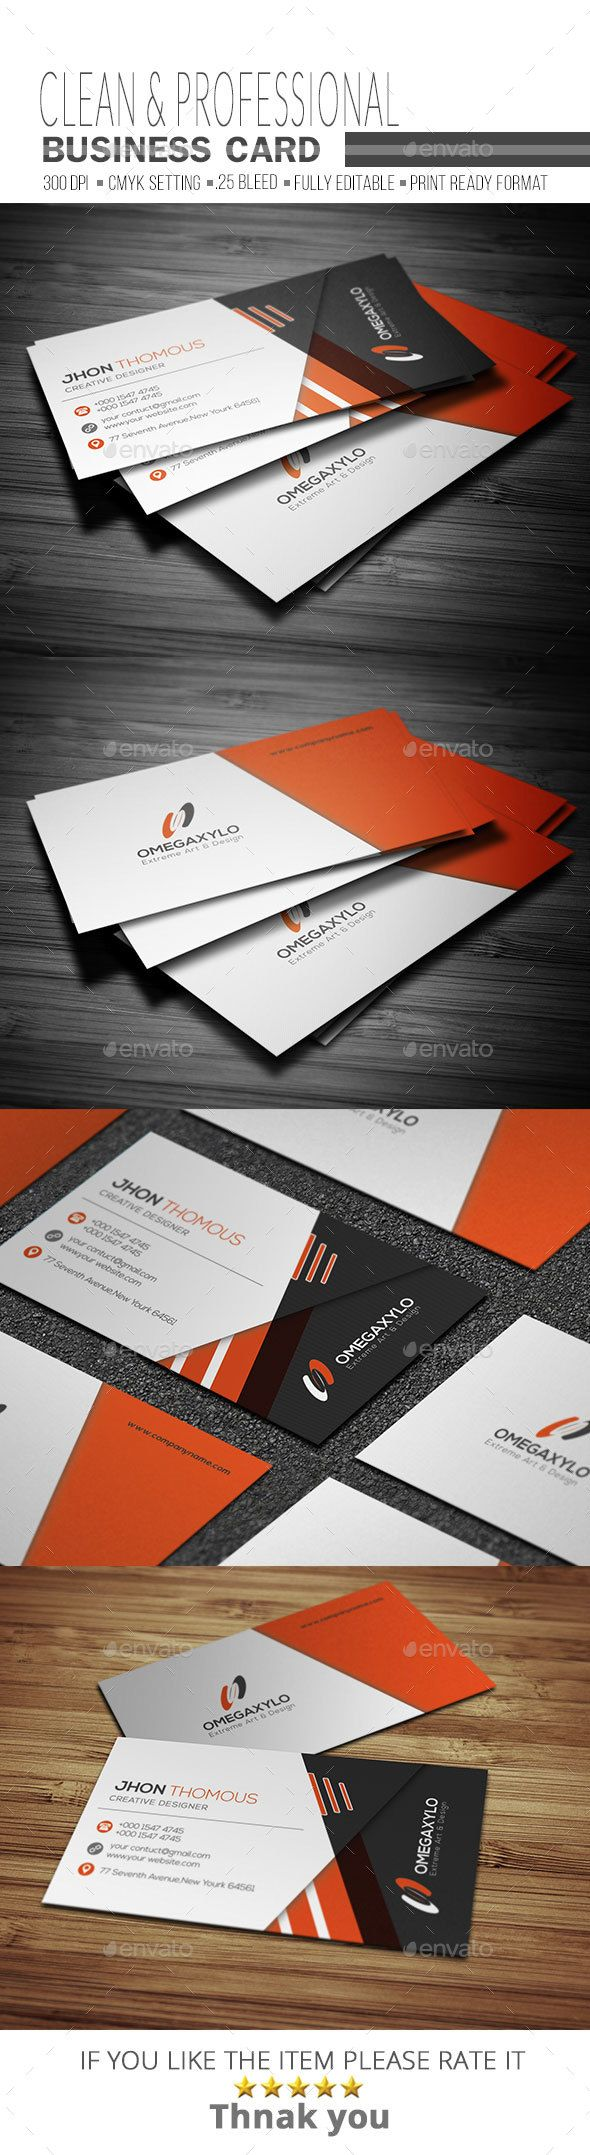 208 Best Business Cards Images On Pinterest Business Card Design